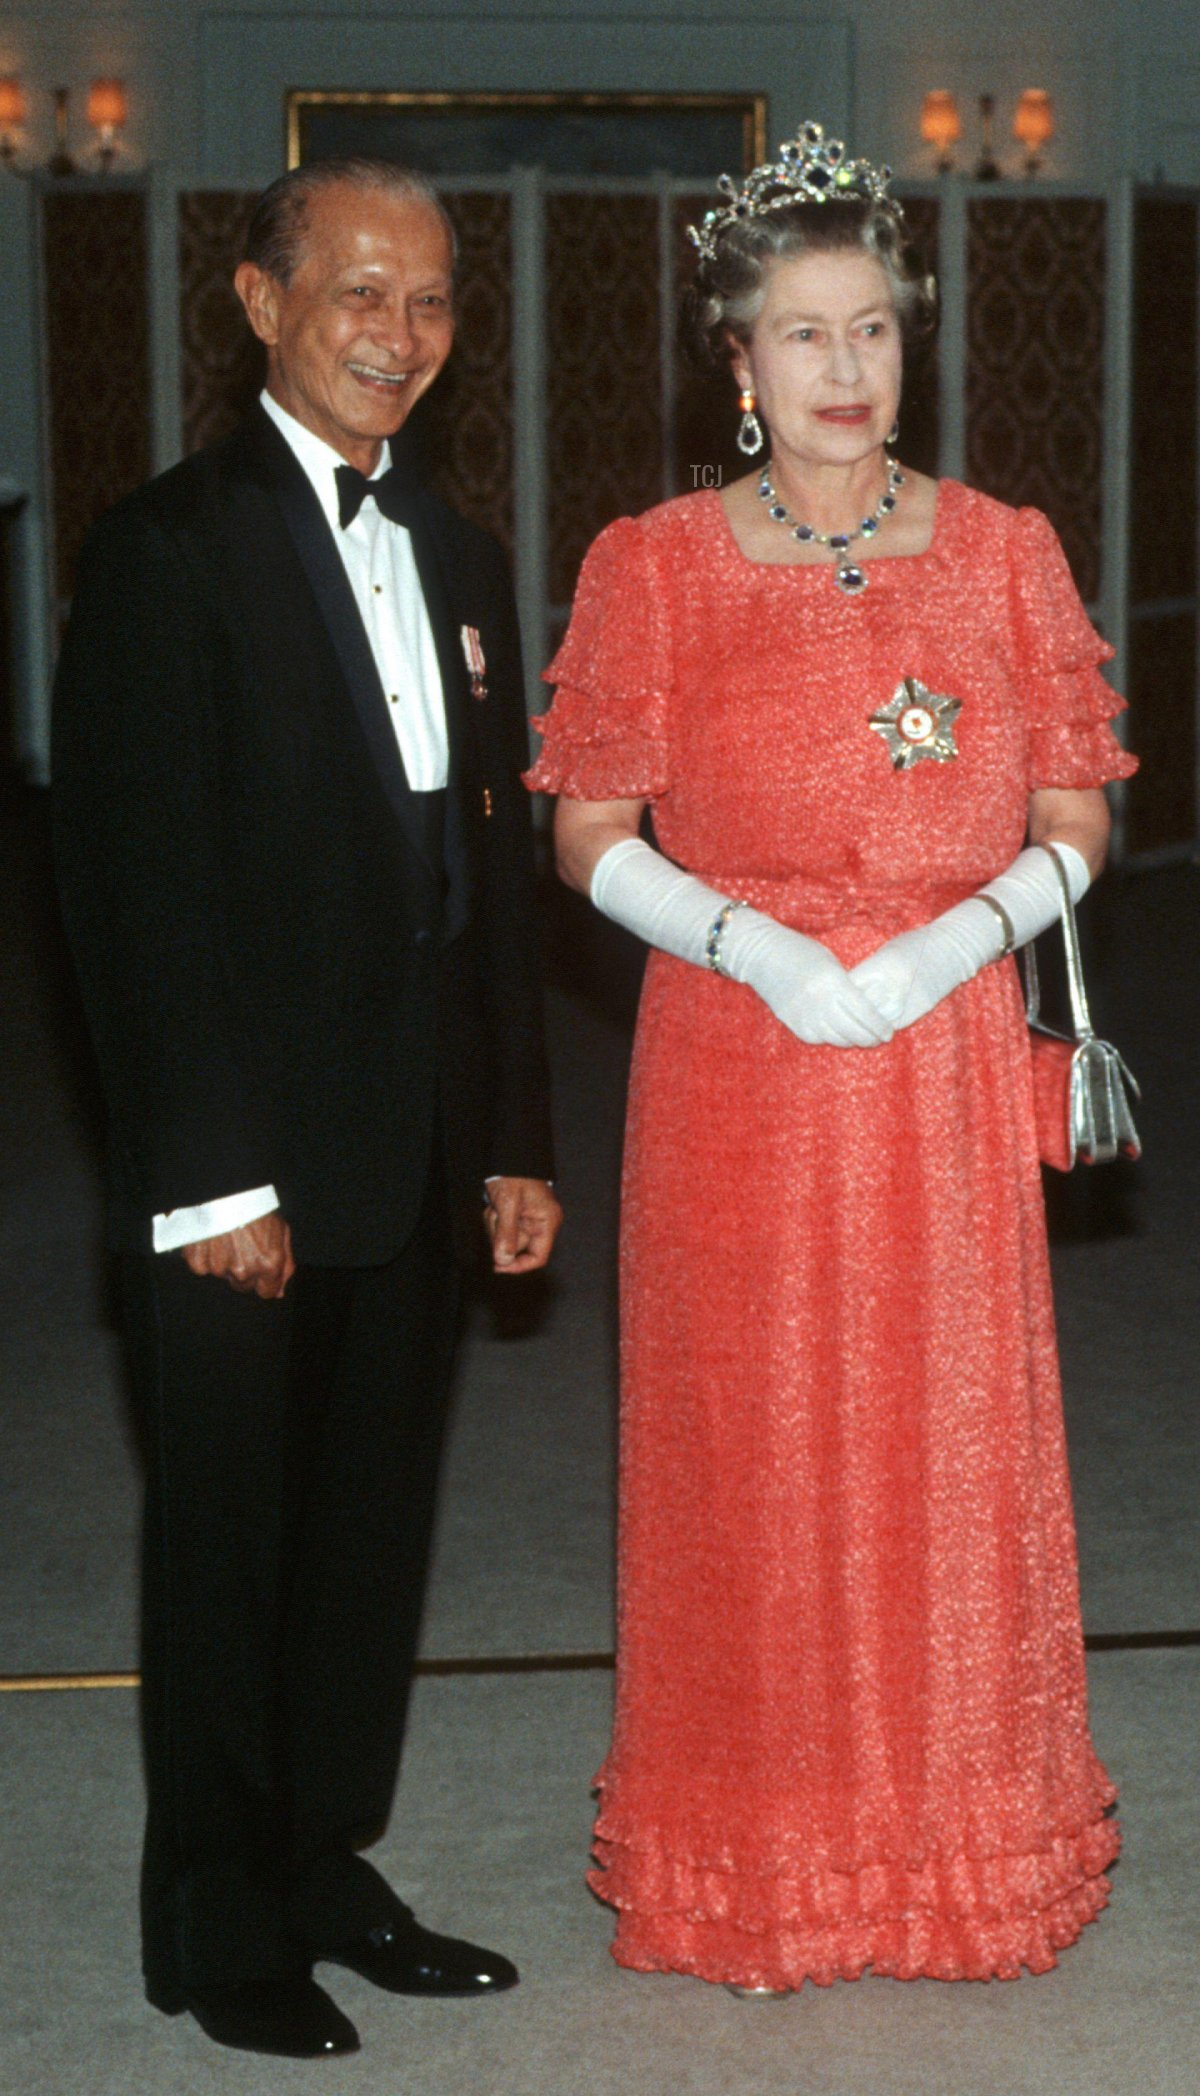 Singapore President Wee Kim Wee and HM Queen Elizabeth II arrive for dinner aboard HMY Britannia, Singapore